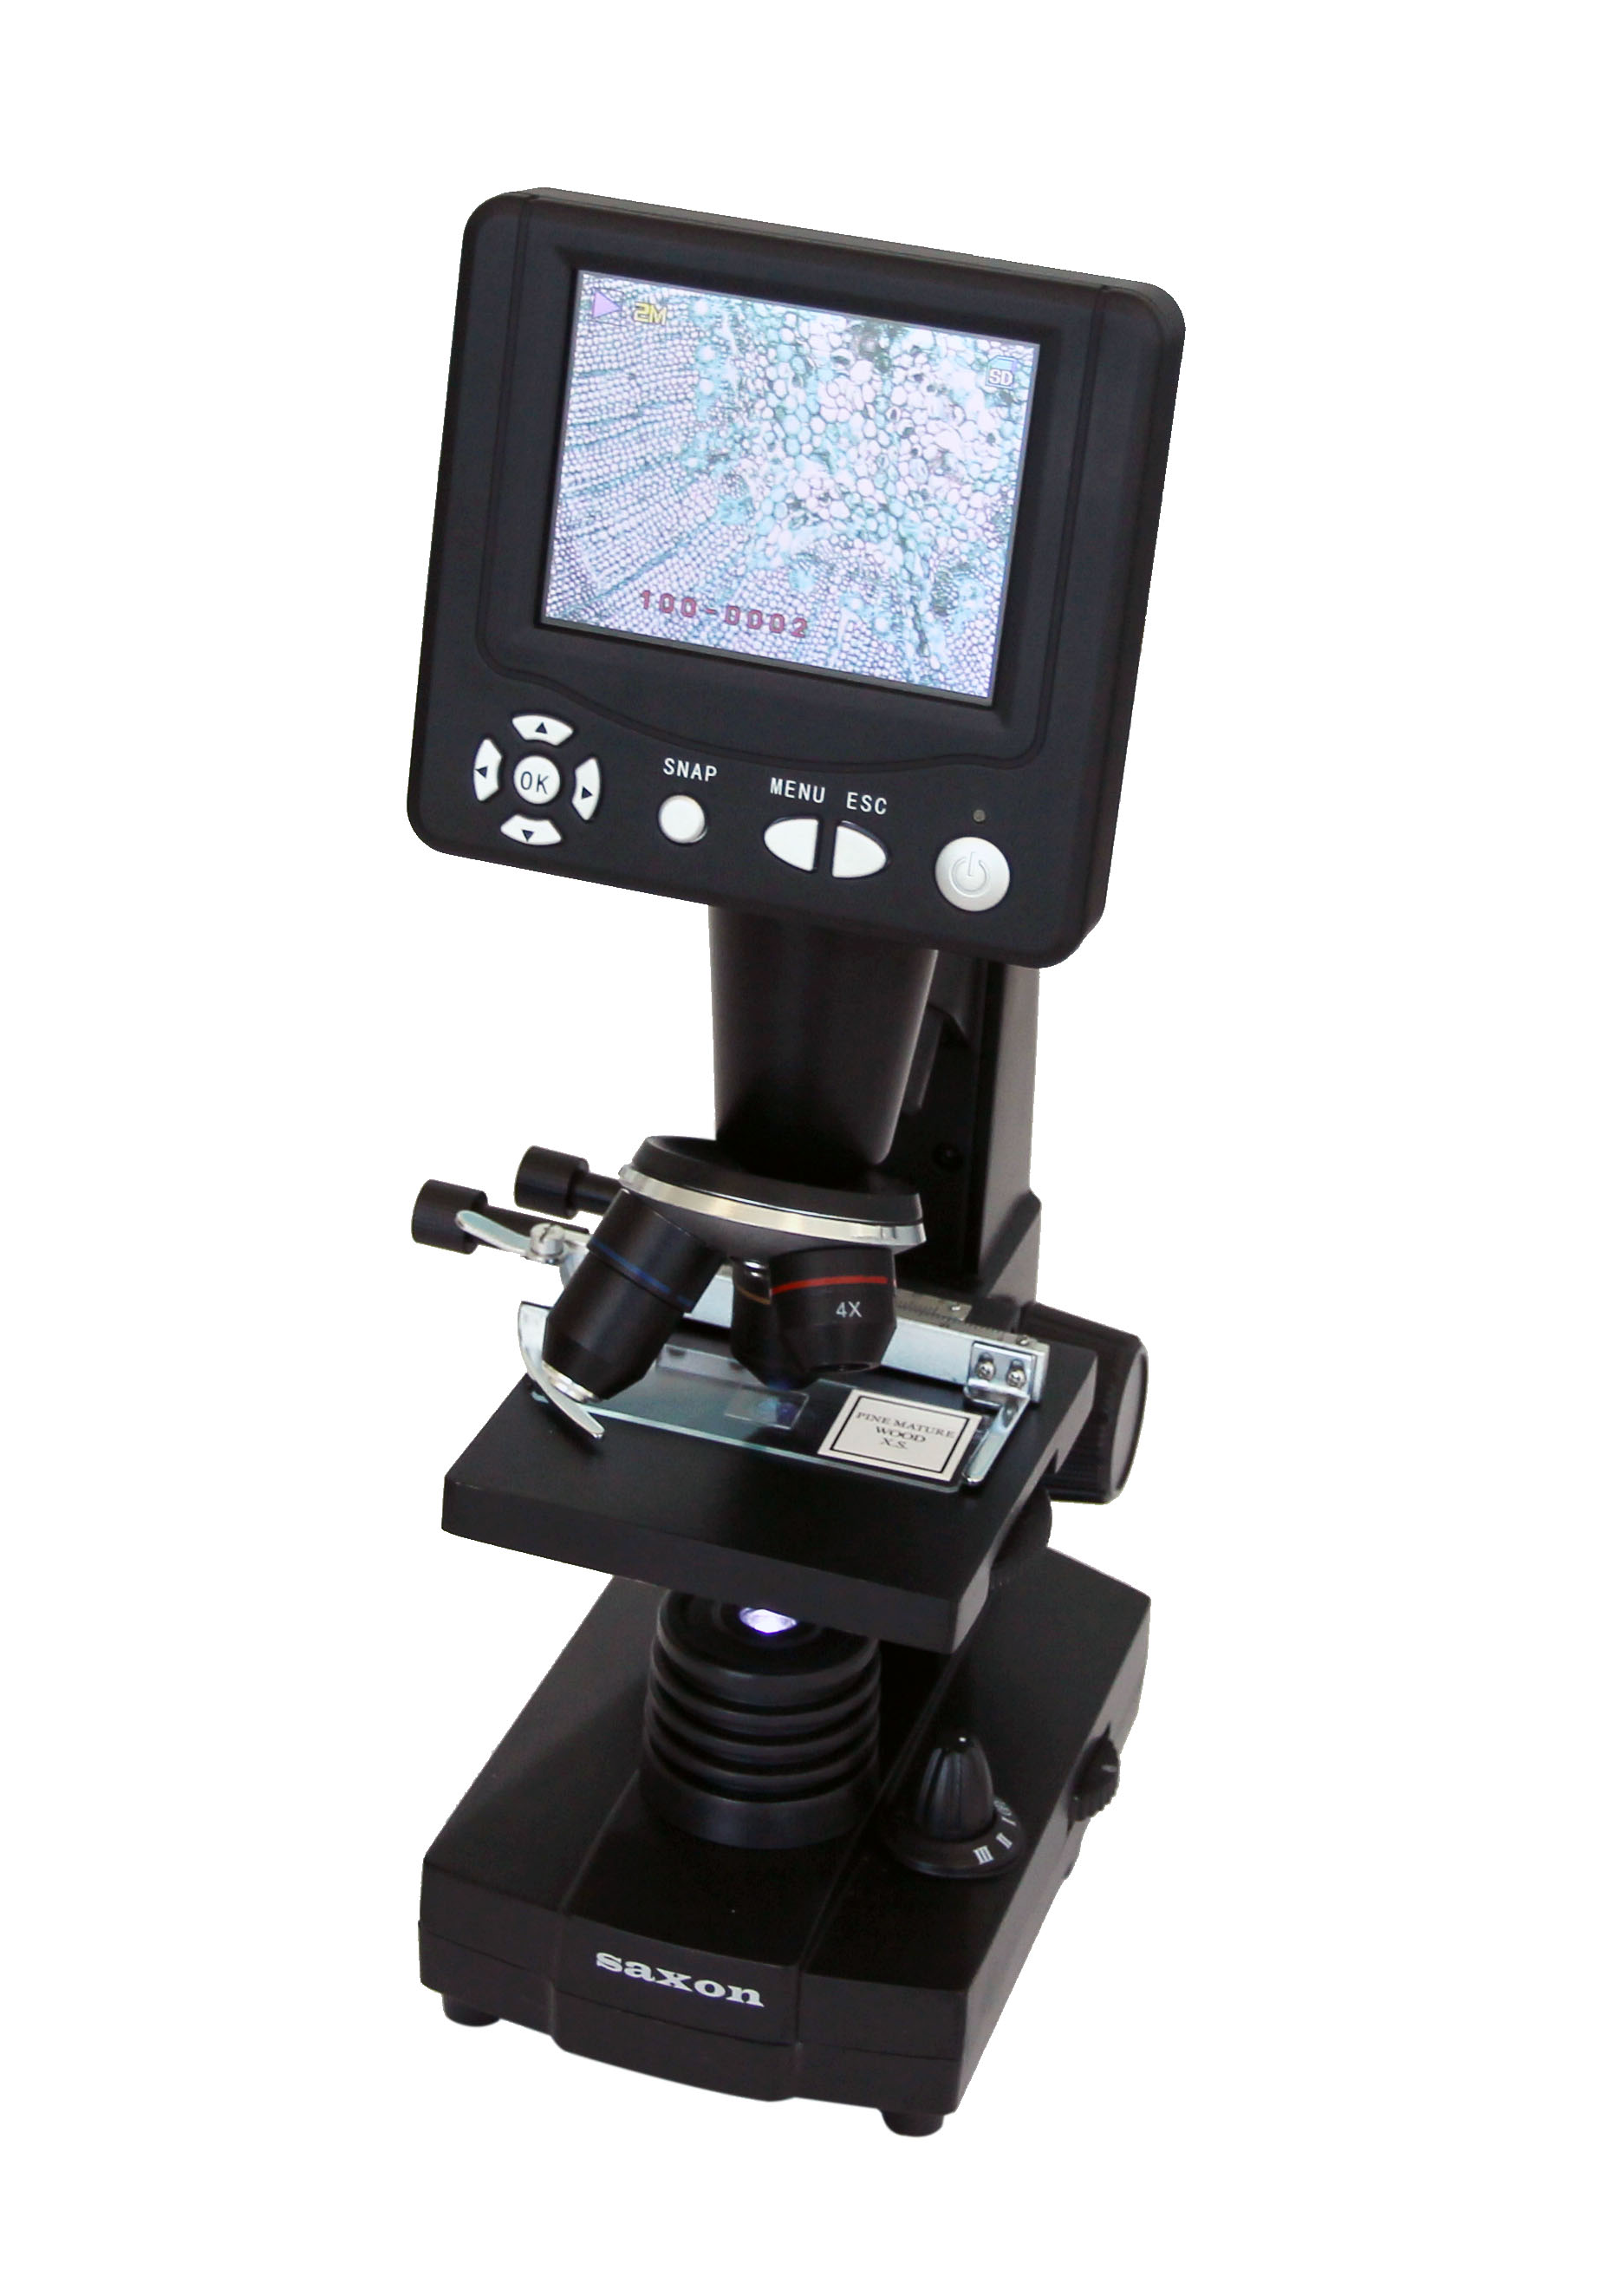 Saxon LCD Digital Microscope Scoop Price $399